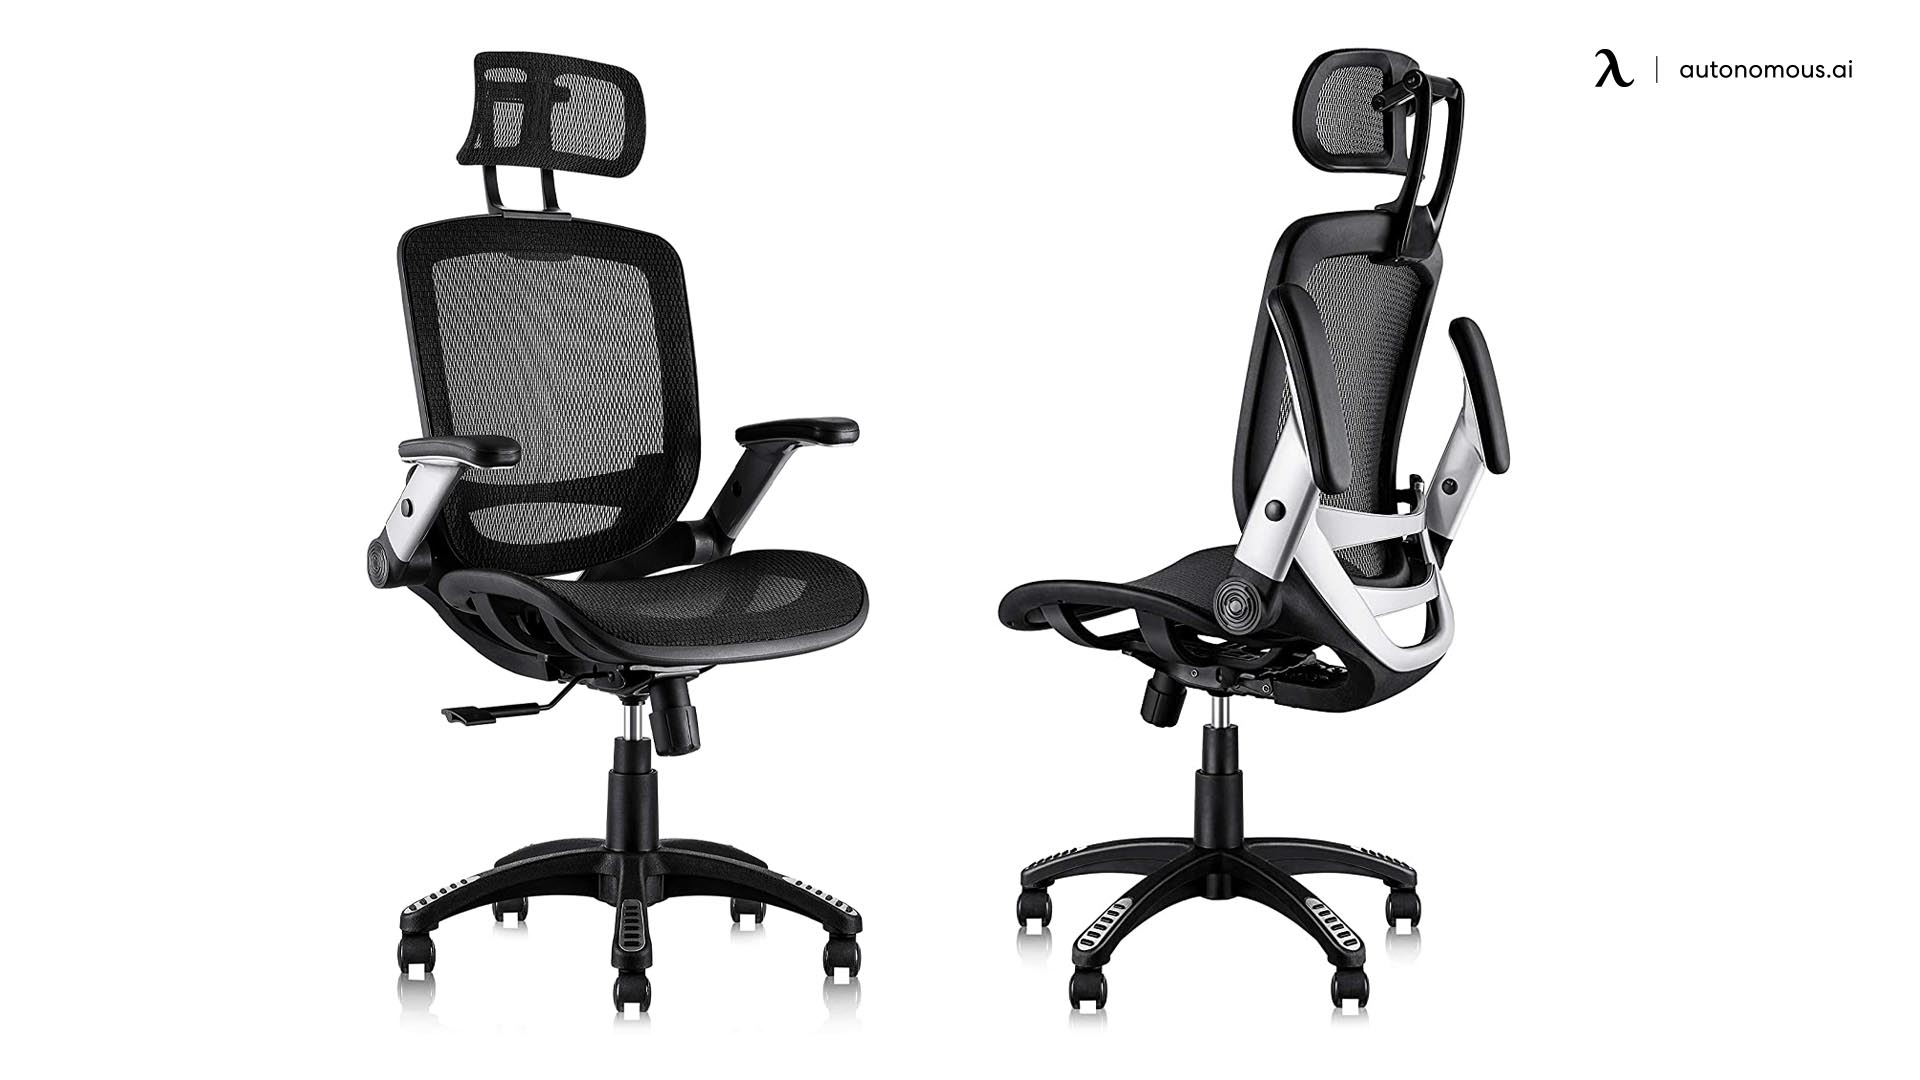 https://cdn.autonomous.ai/static/upload/images/common/upload/20201222/15-Adjustable-Depth-Office-Chairs-that-You-Should-Know_12e54f659341.jpg